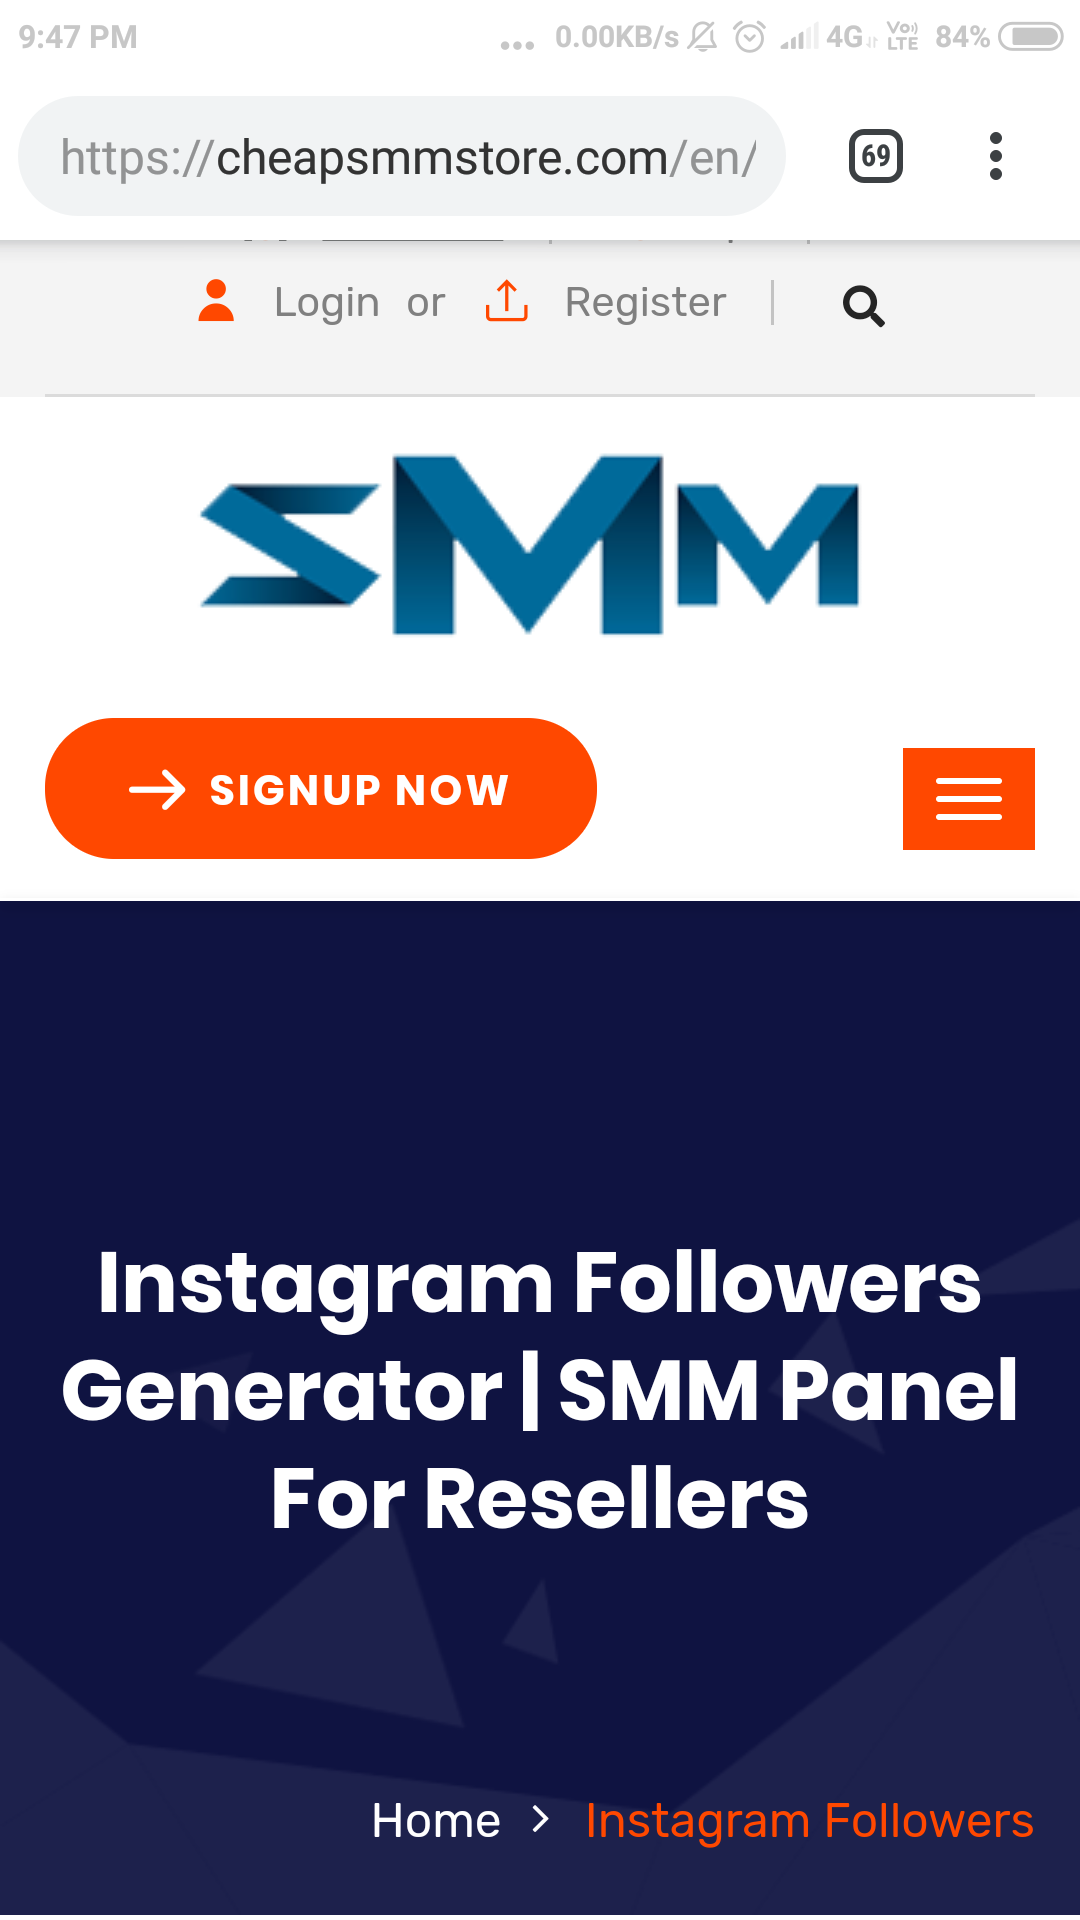 Cheap Smm panel in india | get social media likes at cheap